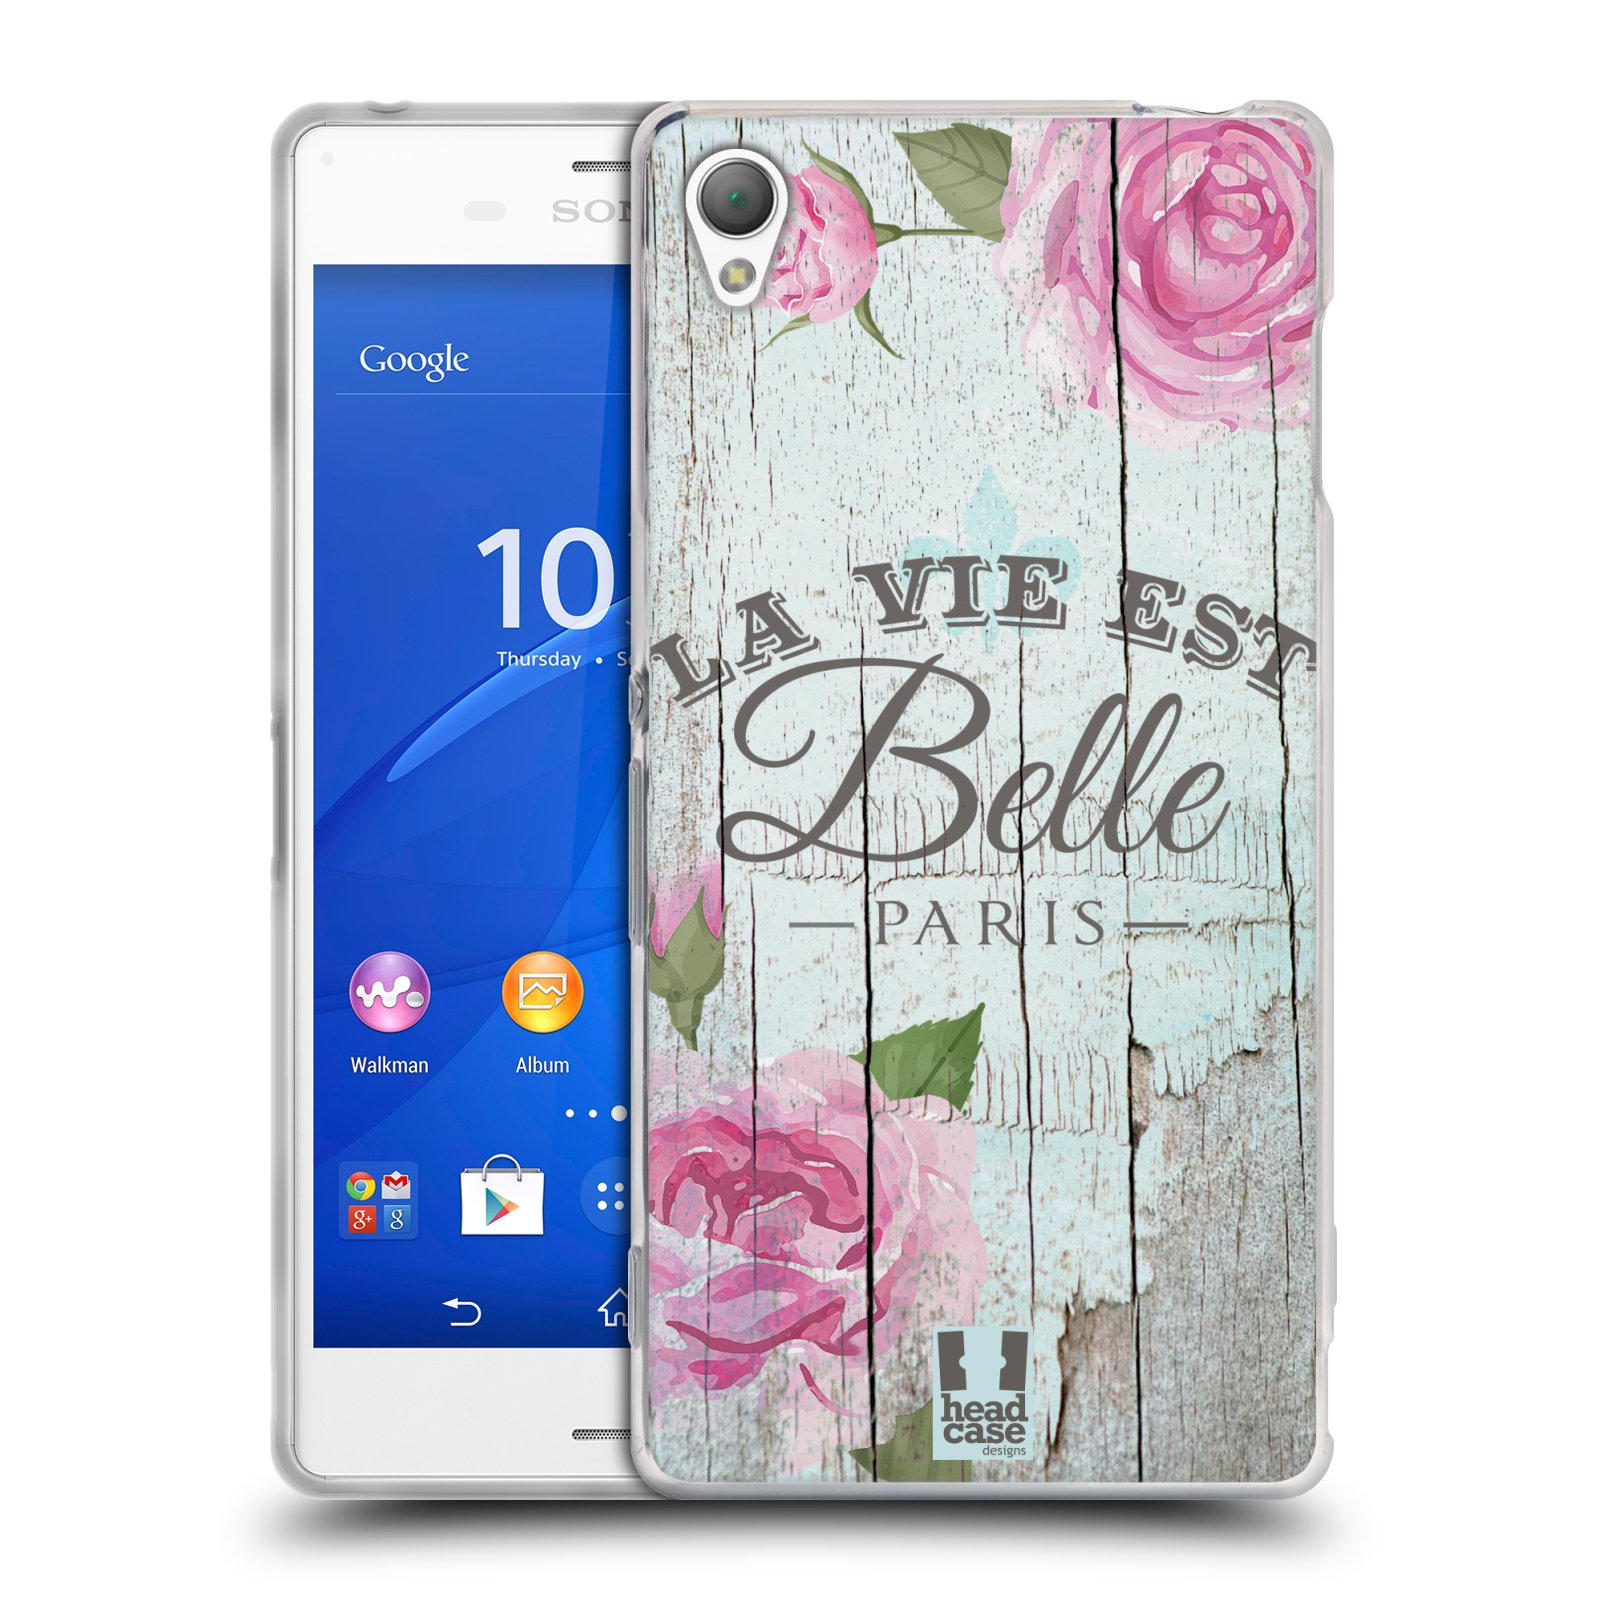 Silikonové pouzdro na mobil Sony Xperia Z3 D6603 HEAD CASE LIFE IN THE COUNTRY BELLE